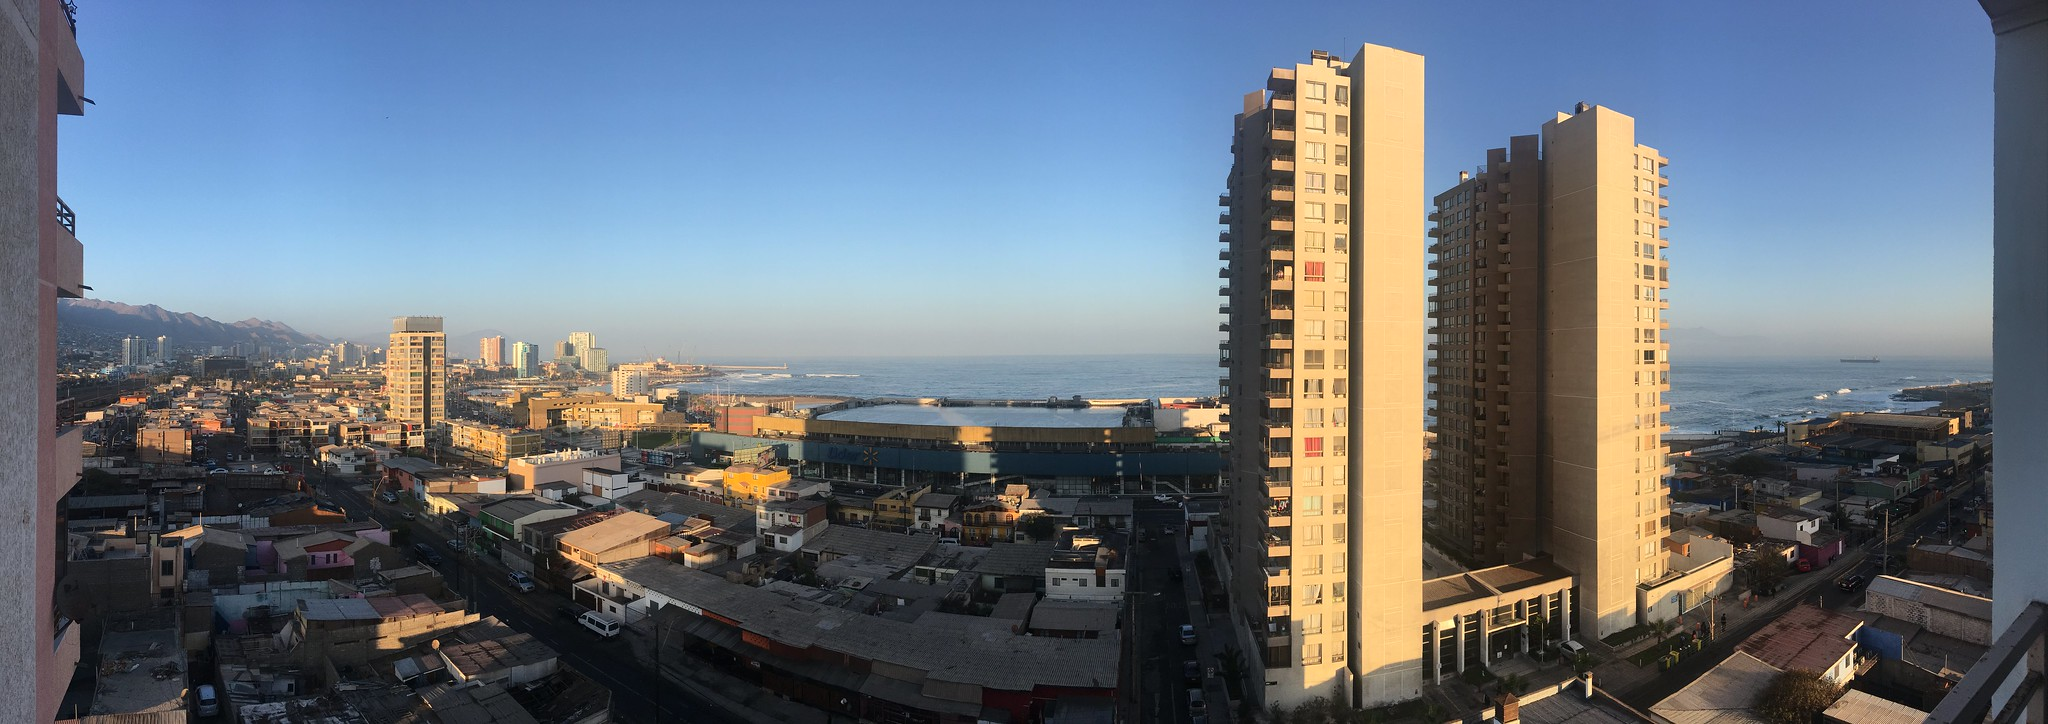 View from balcony at Montevideo 143